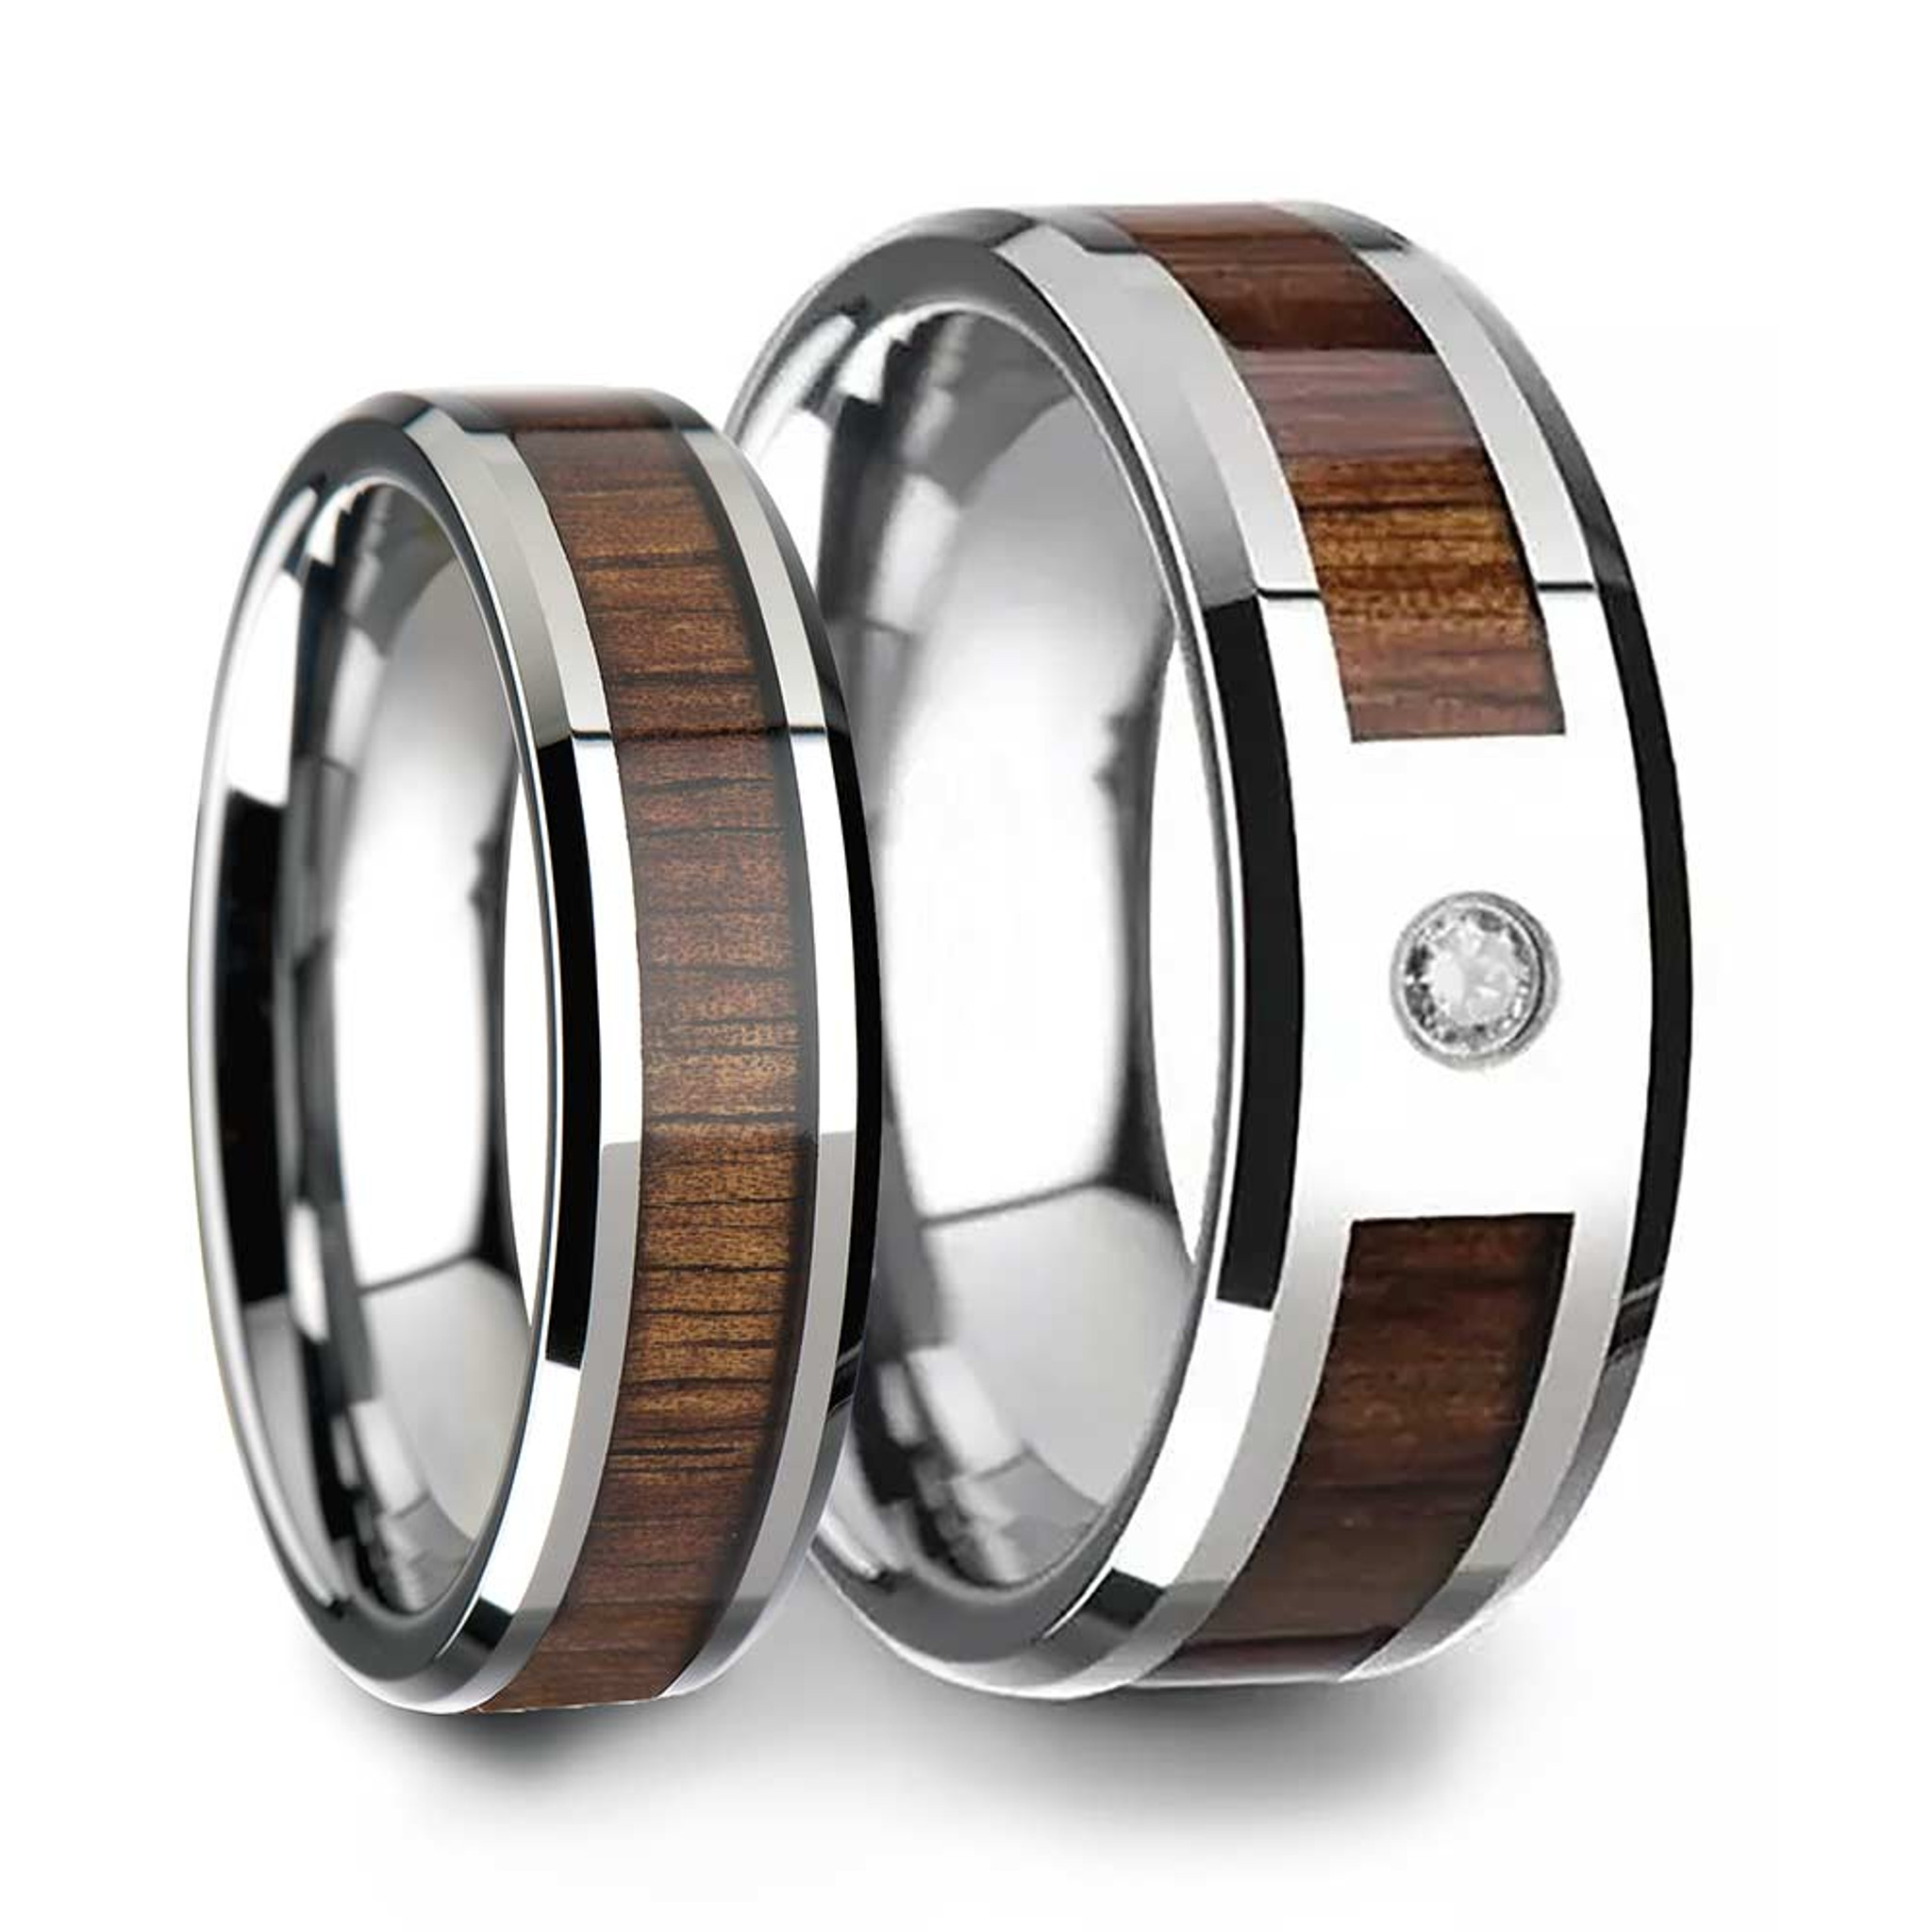 Koa Wood Inlaid Tungsten Couple's Matching Wedding Band Set from Vansweden Jewelers